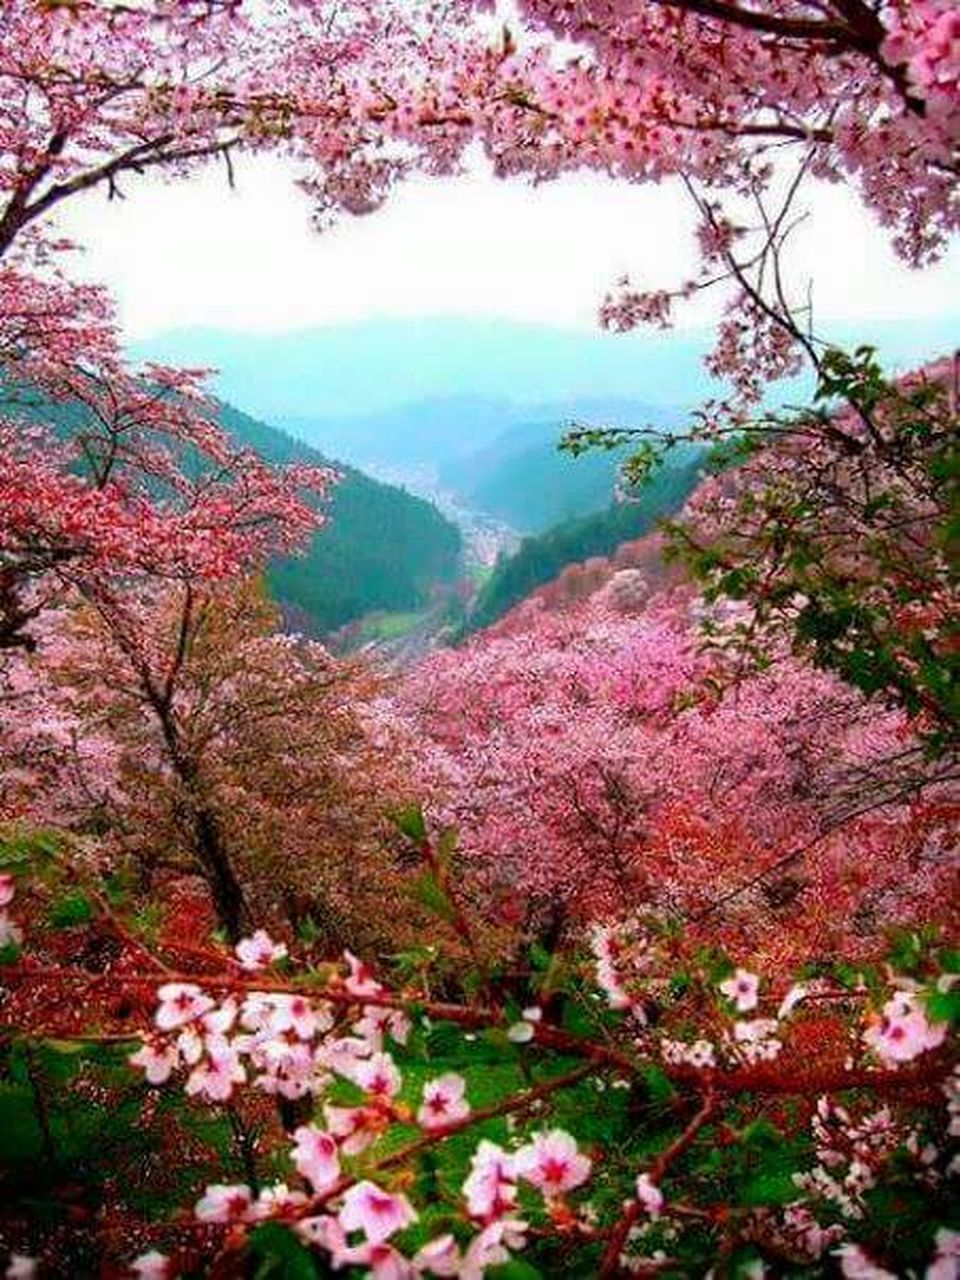 tree, beauty in nature, nature, flower, autumn, scenics, blossom, tranquility, no people, day, travel destinations, branch, springtime, tranquil scene, pink color, outdoors, growth, mountain, leaf, change, freshness, fragility, sky